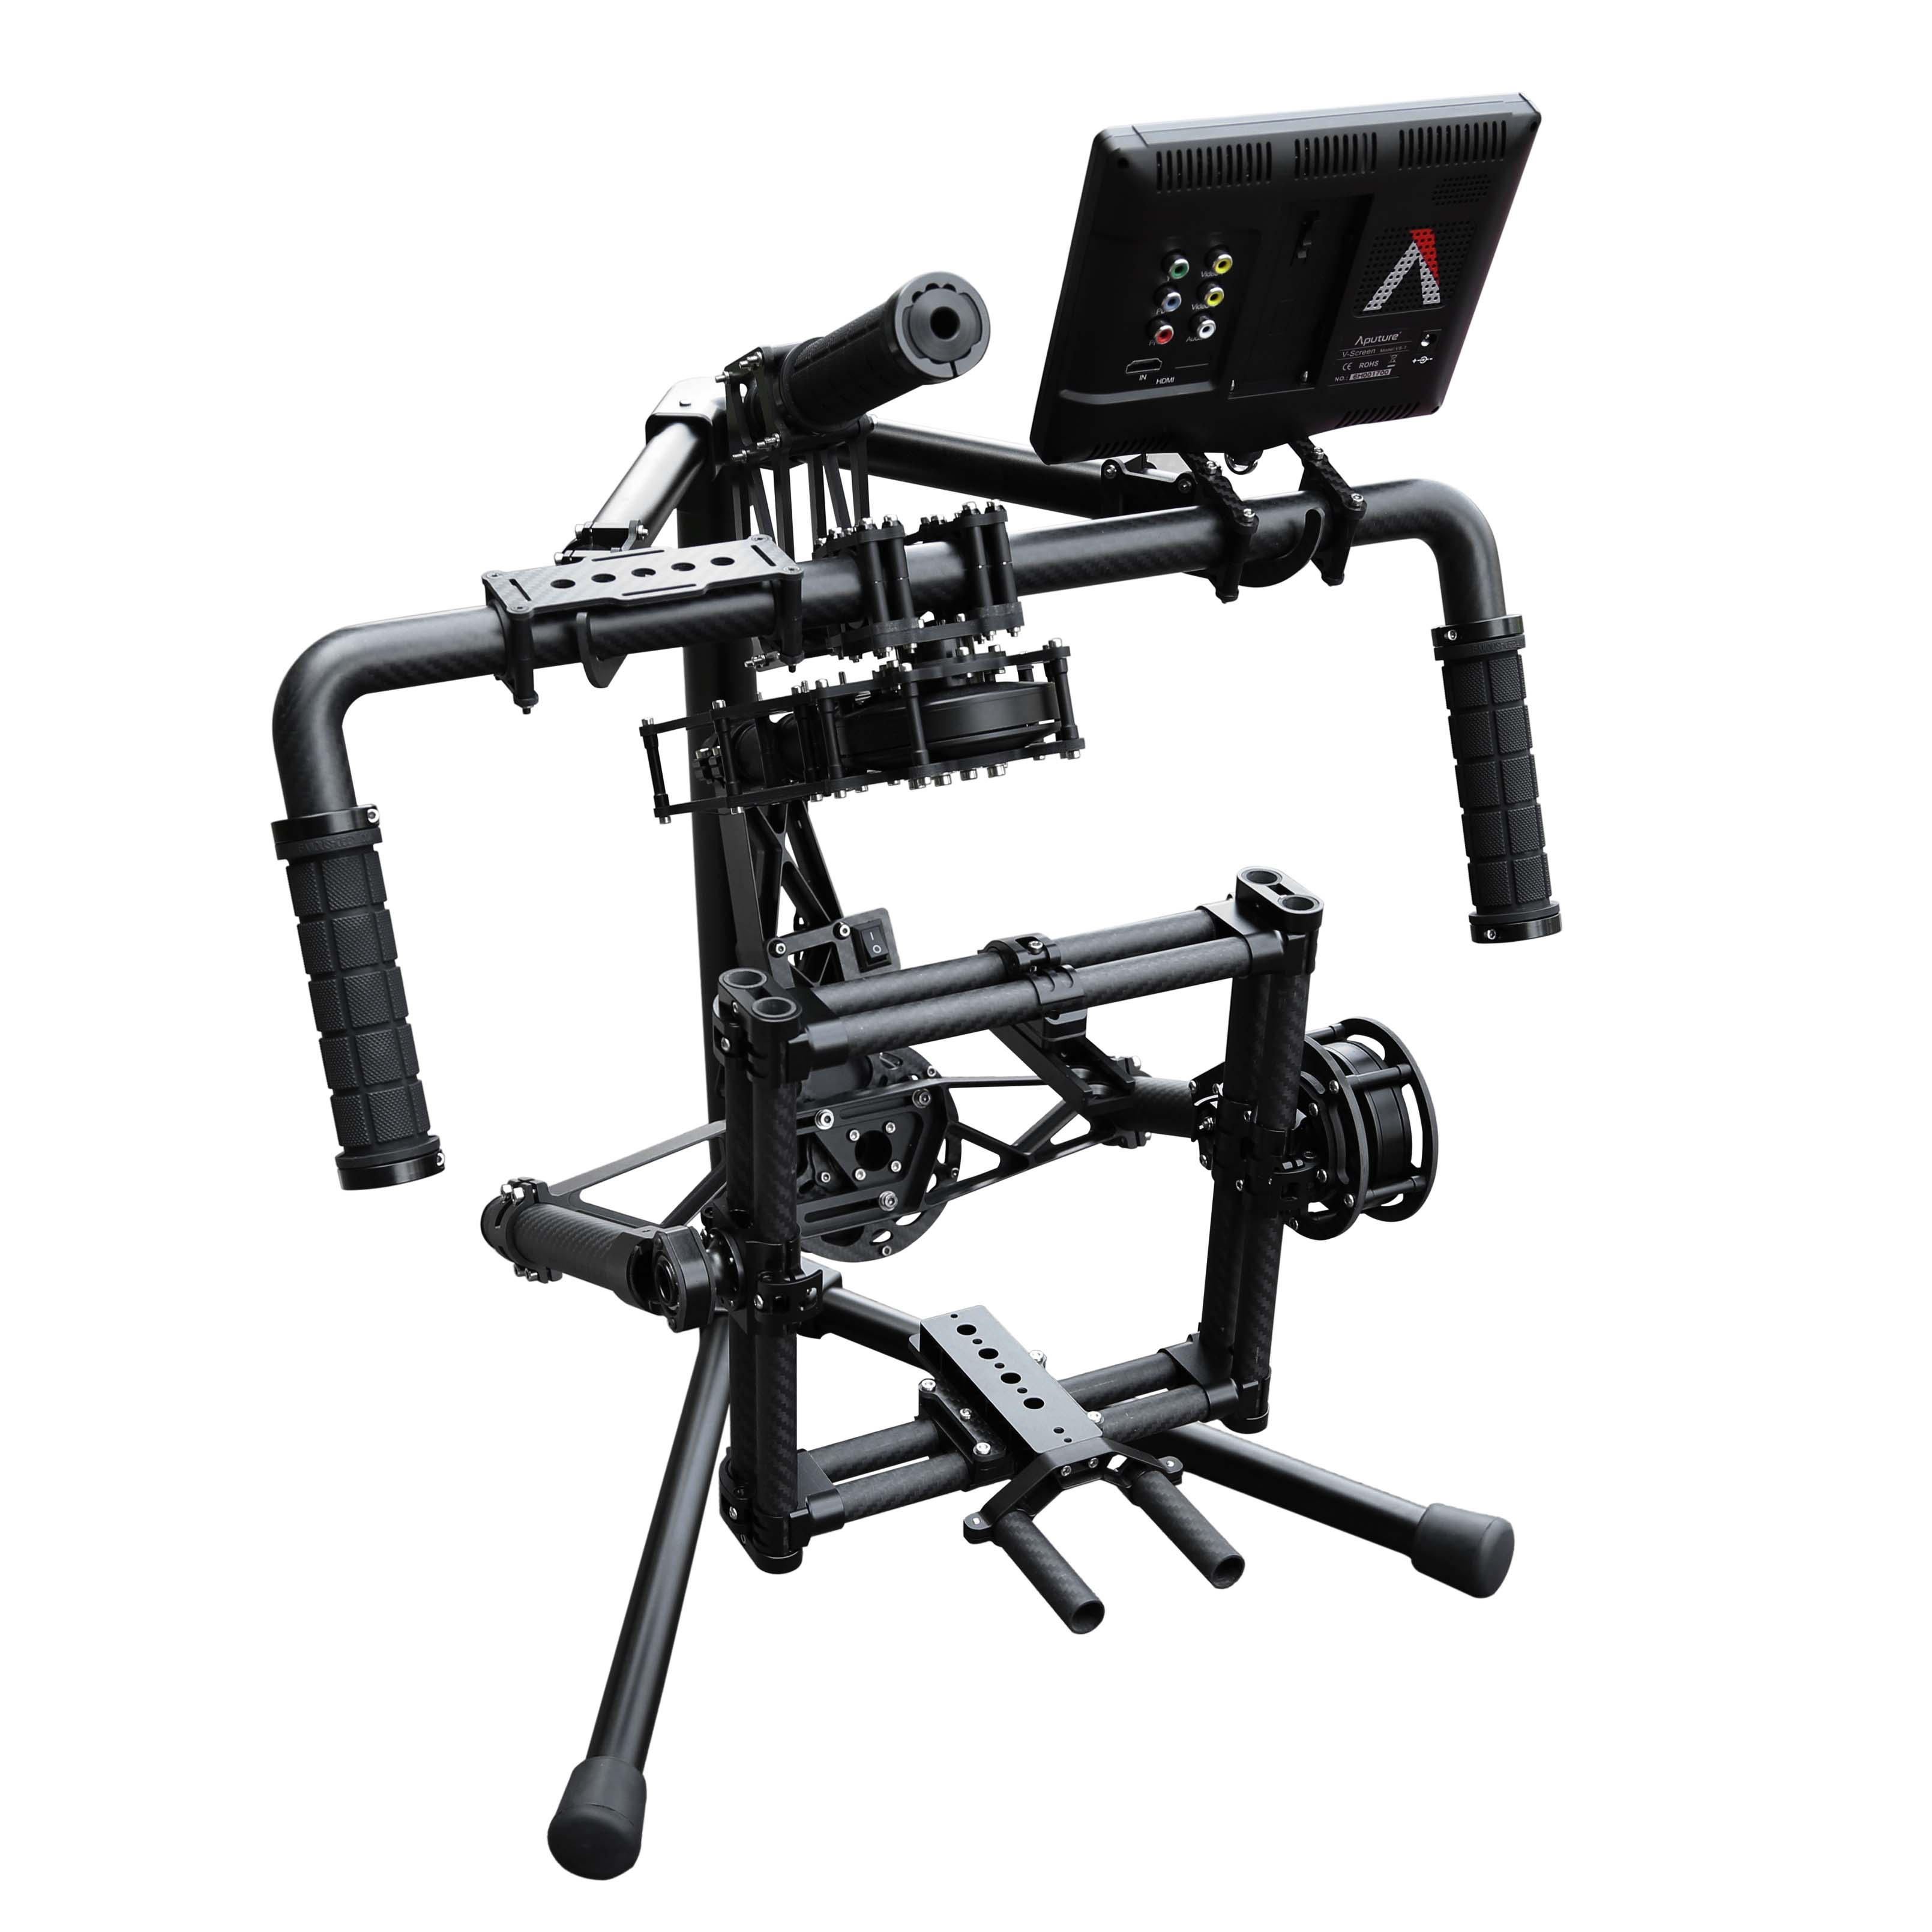 Professional 3 axis Brushless Gimbal Hand Held